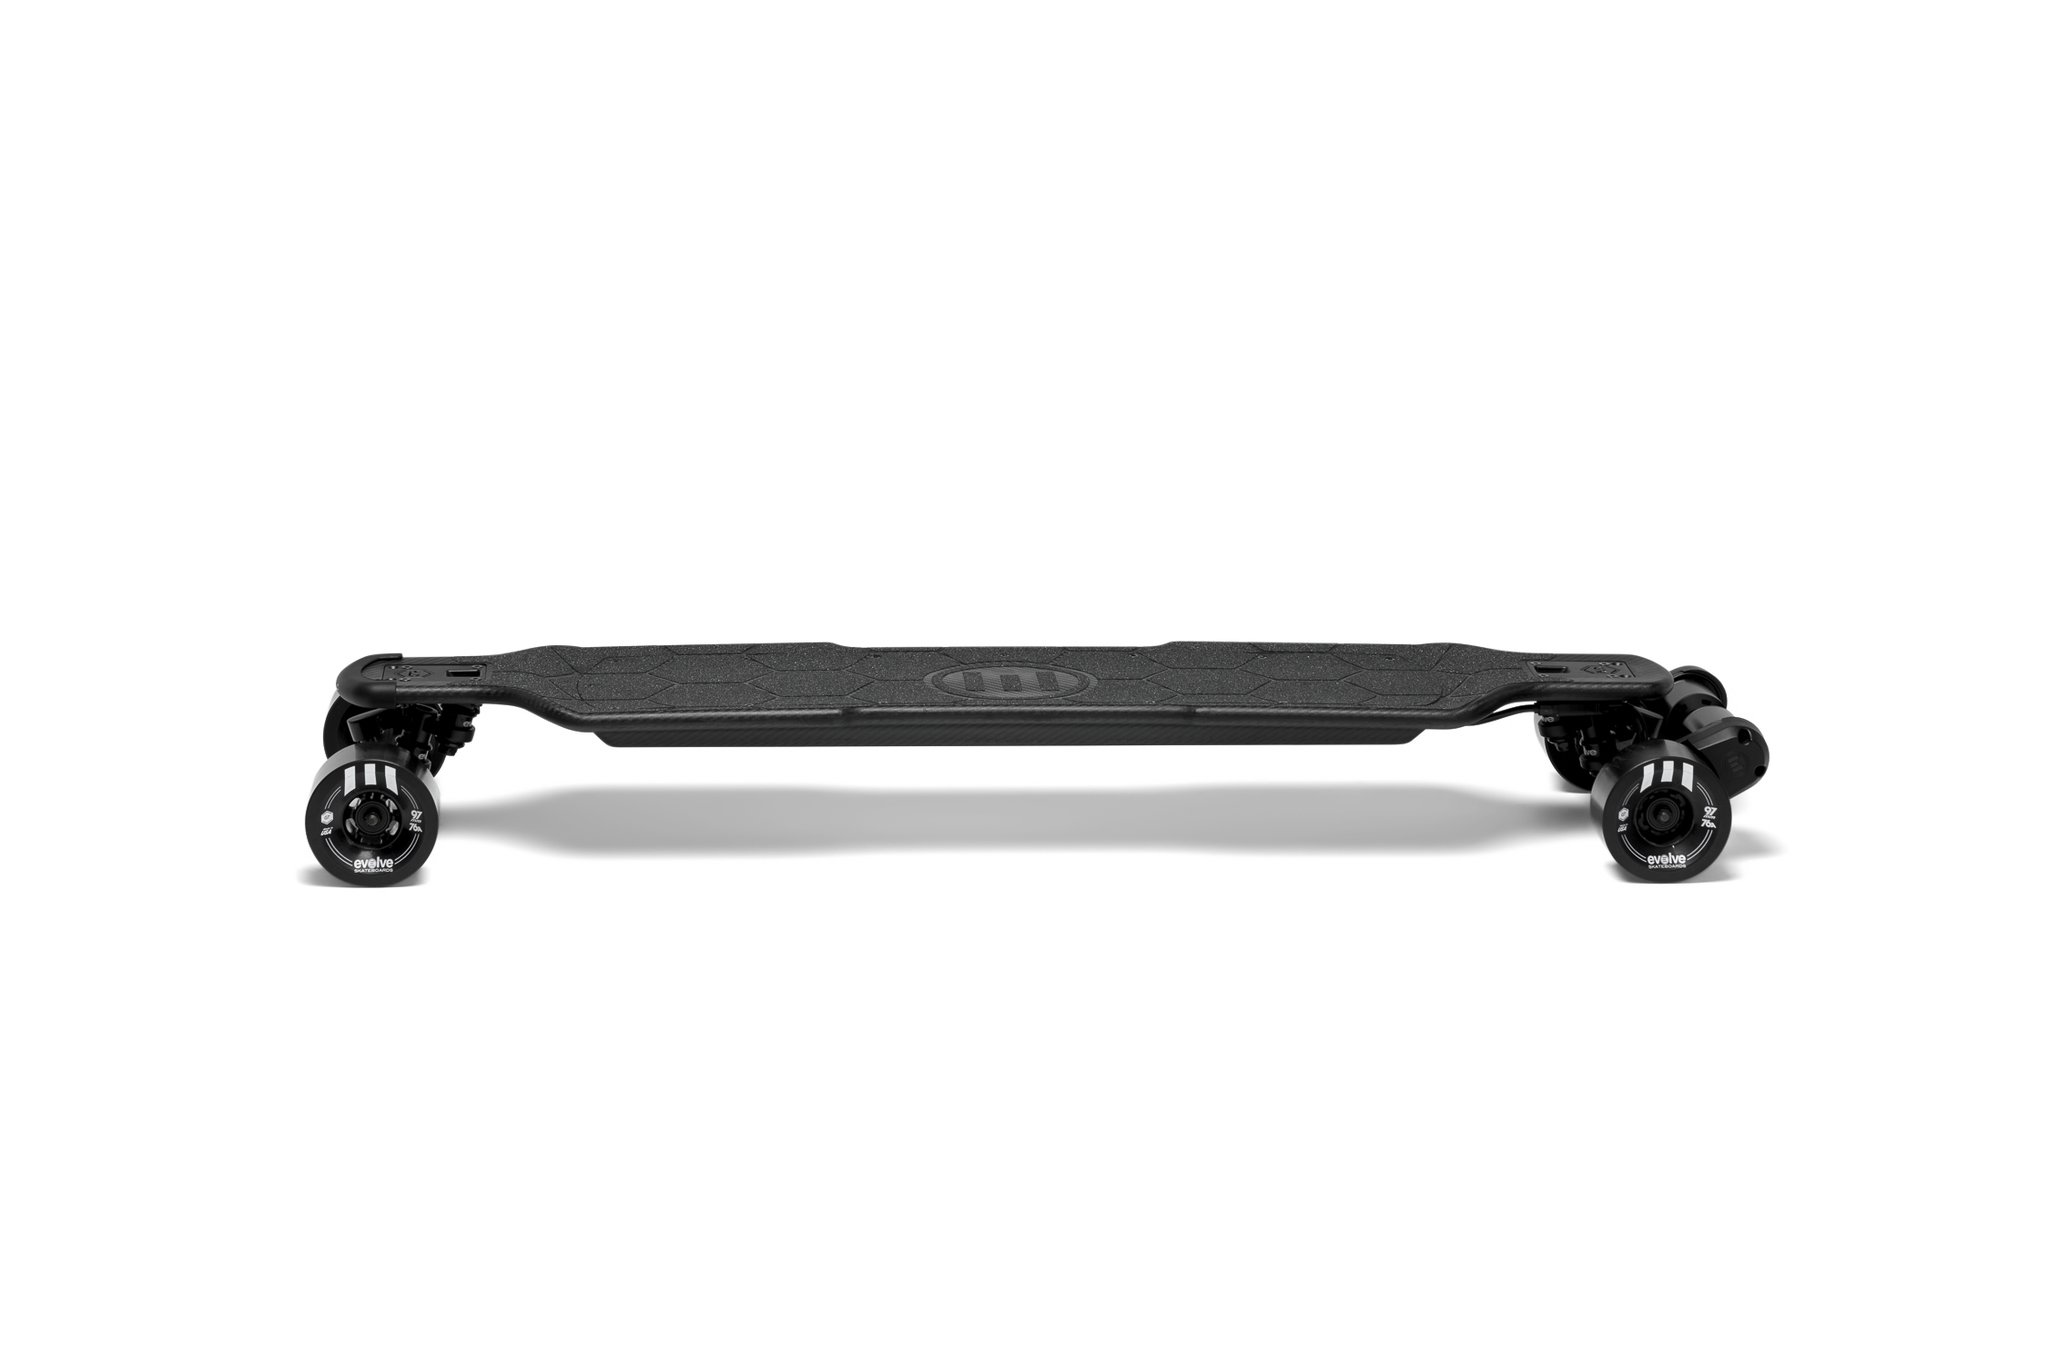 Evolve Carbon Street electric skateboard in black on a white background